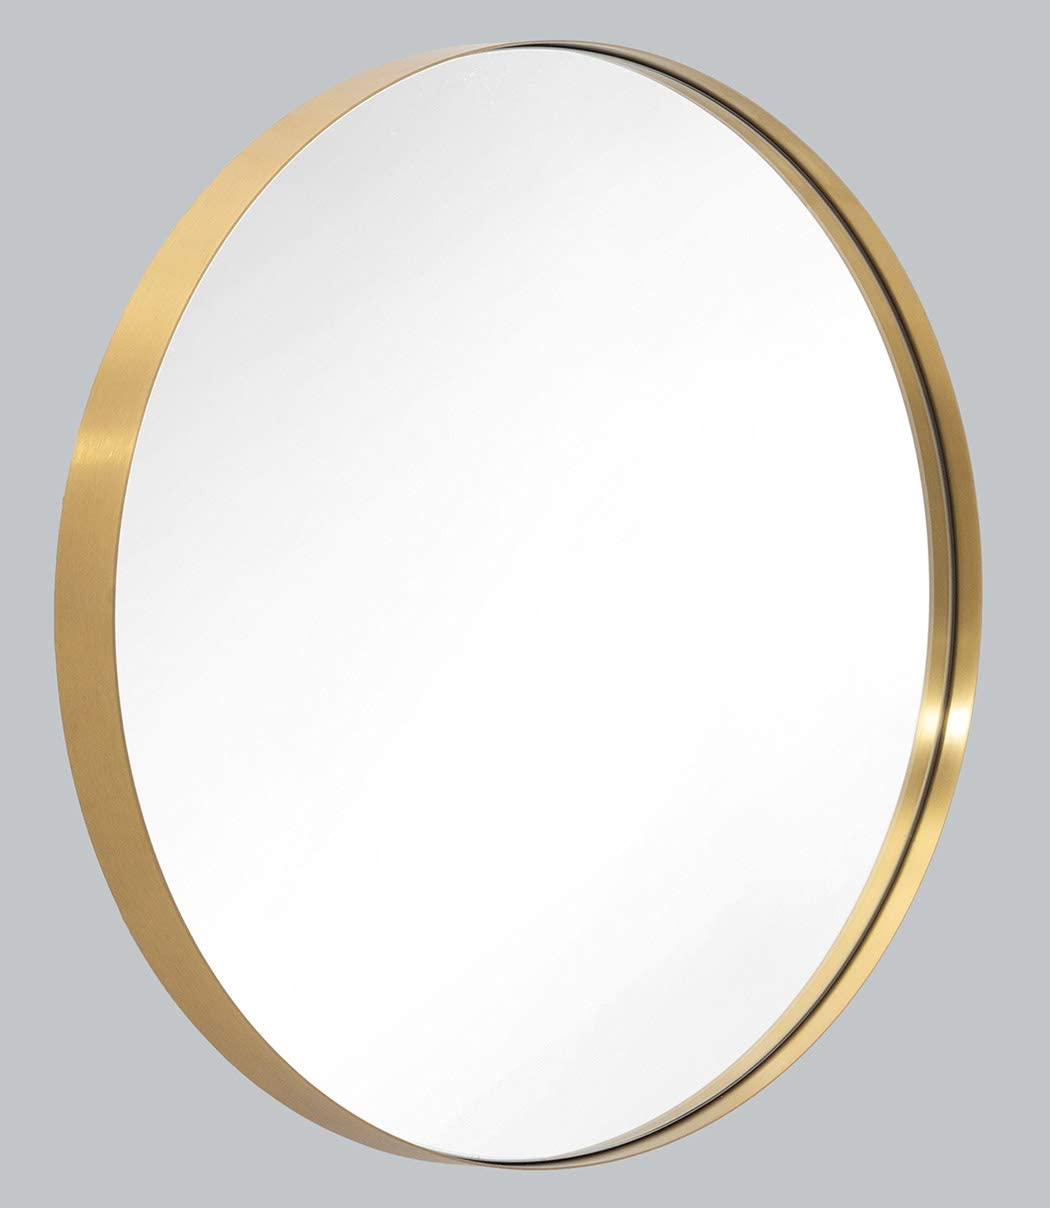 Amazon Com Wall Mirror 30 Brushed Gold Round Metal Stainless Steel Circle Frame For Bathroom Entryways Washrooms Living Rooms Doubles As Modern Wall Art Home Kitchen